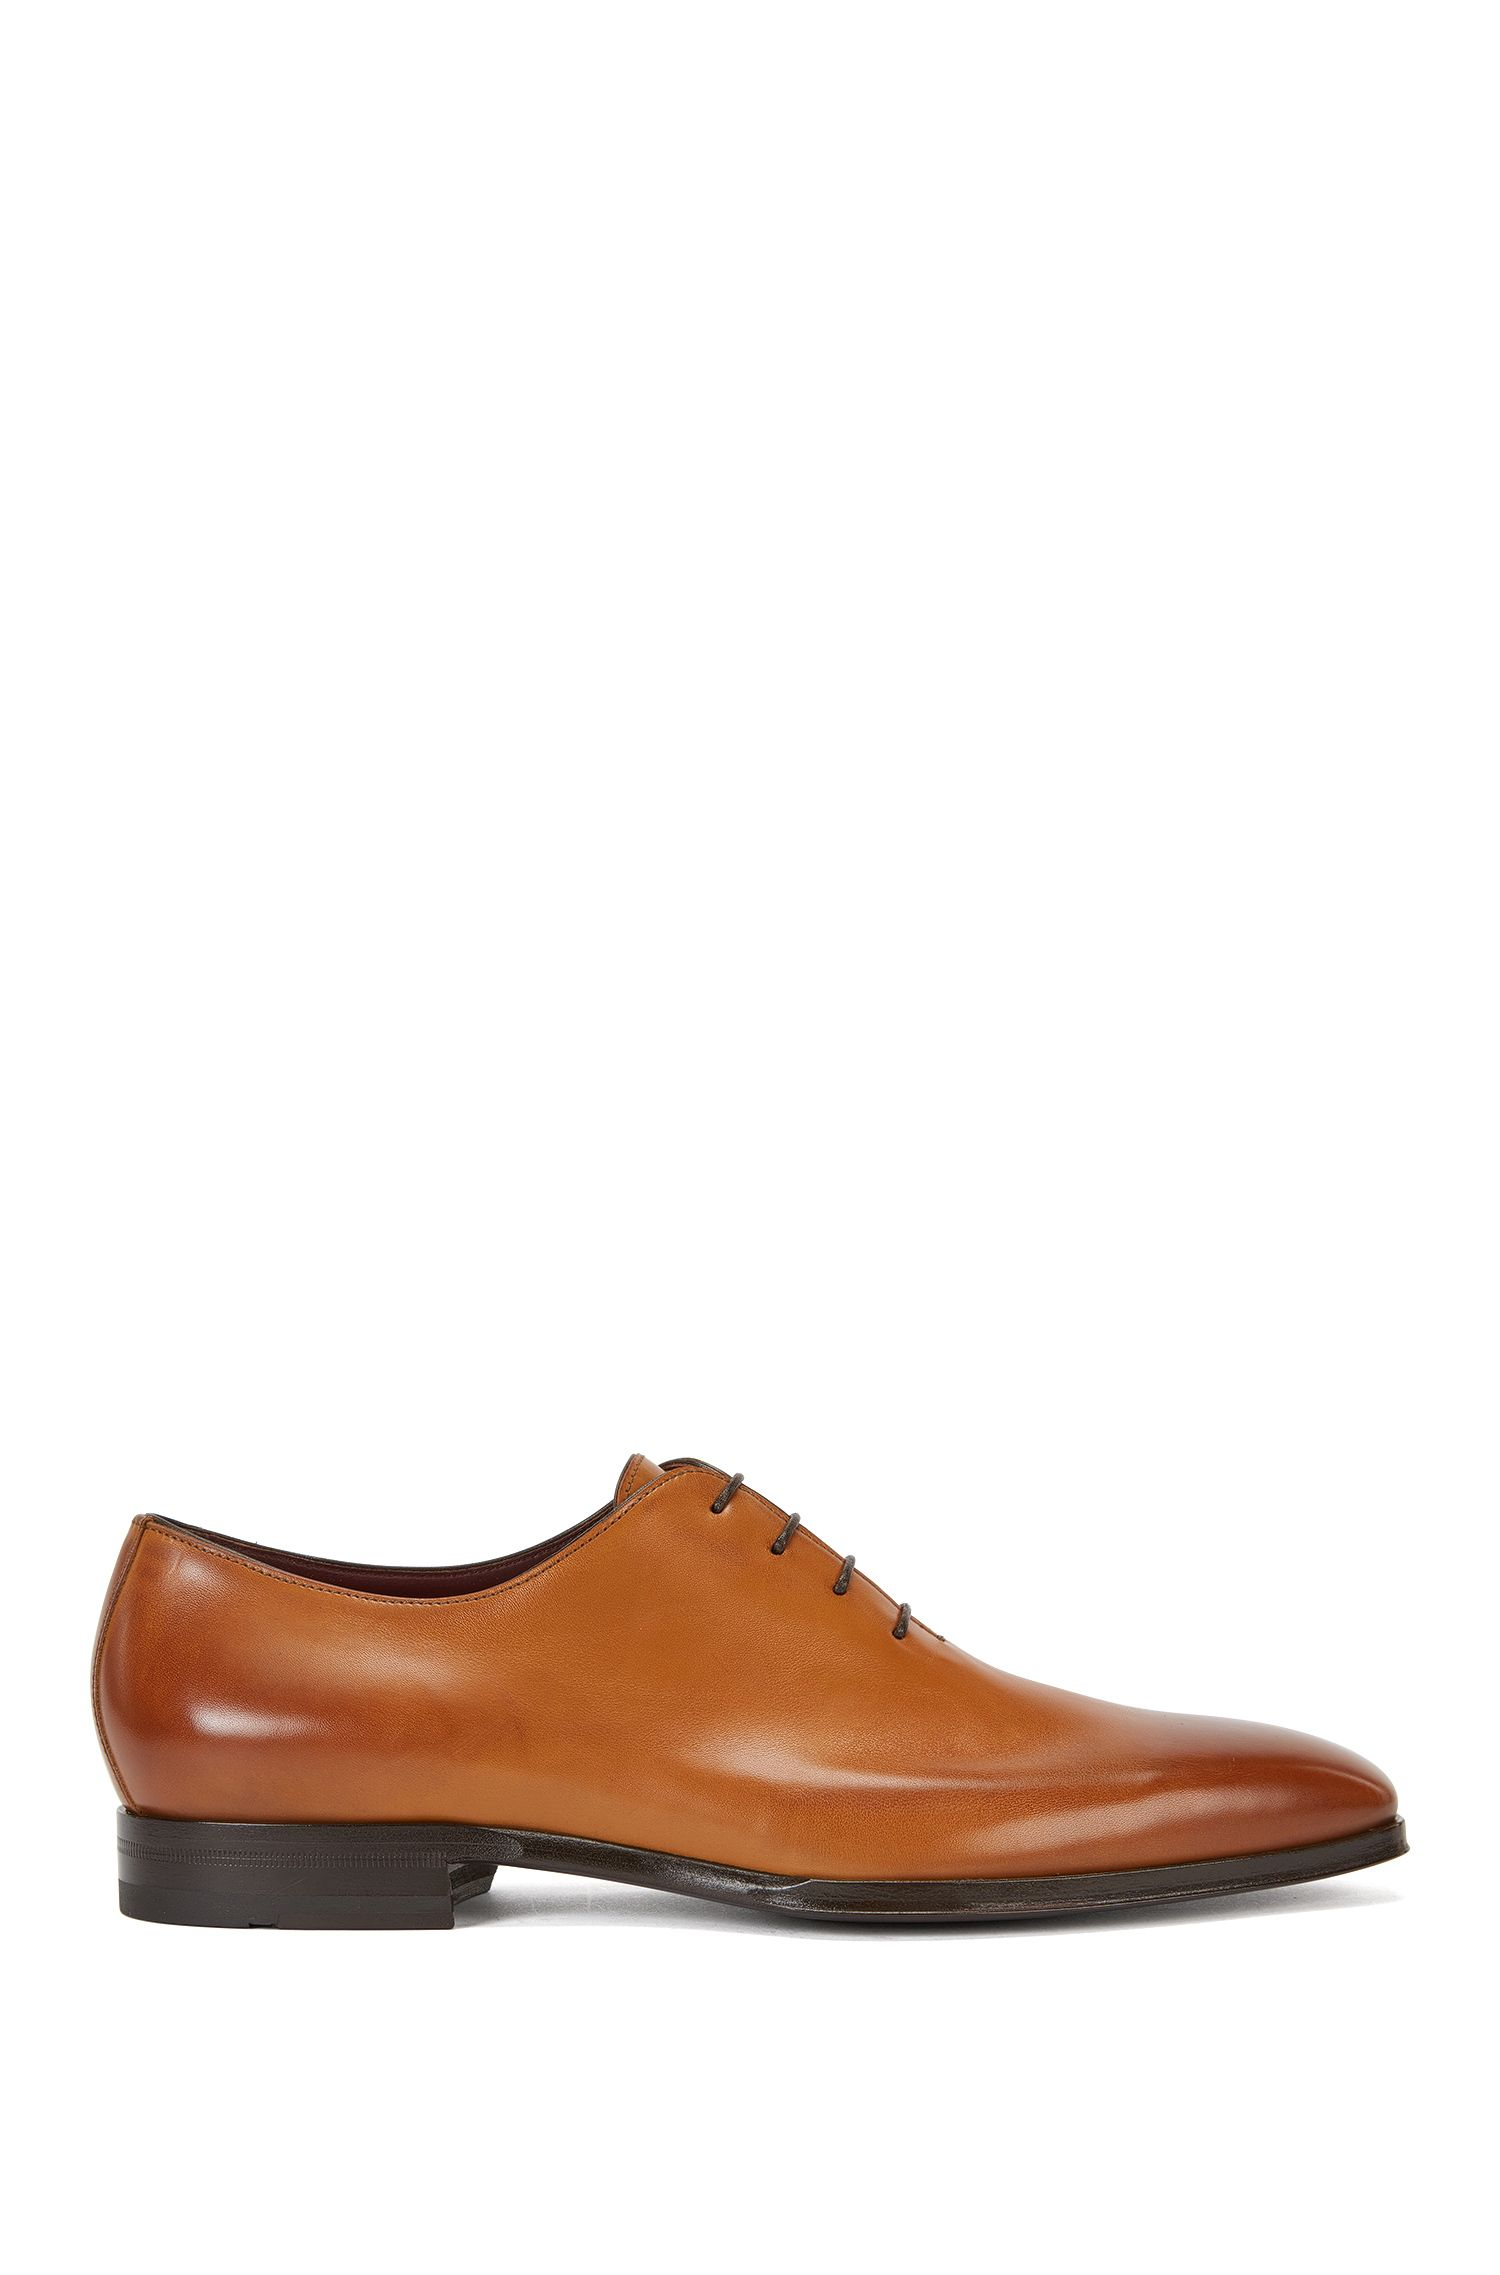 Italian Calfskin Oxford Dress Shoe | T-Club Oxfr ltpt